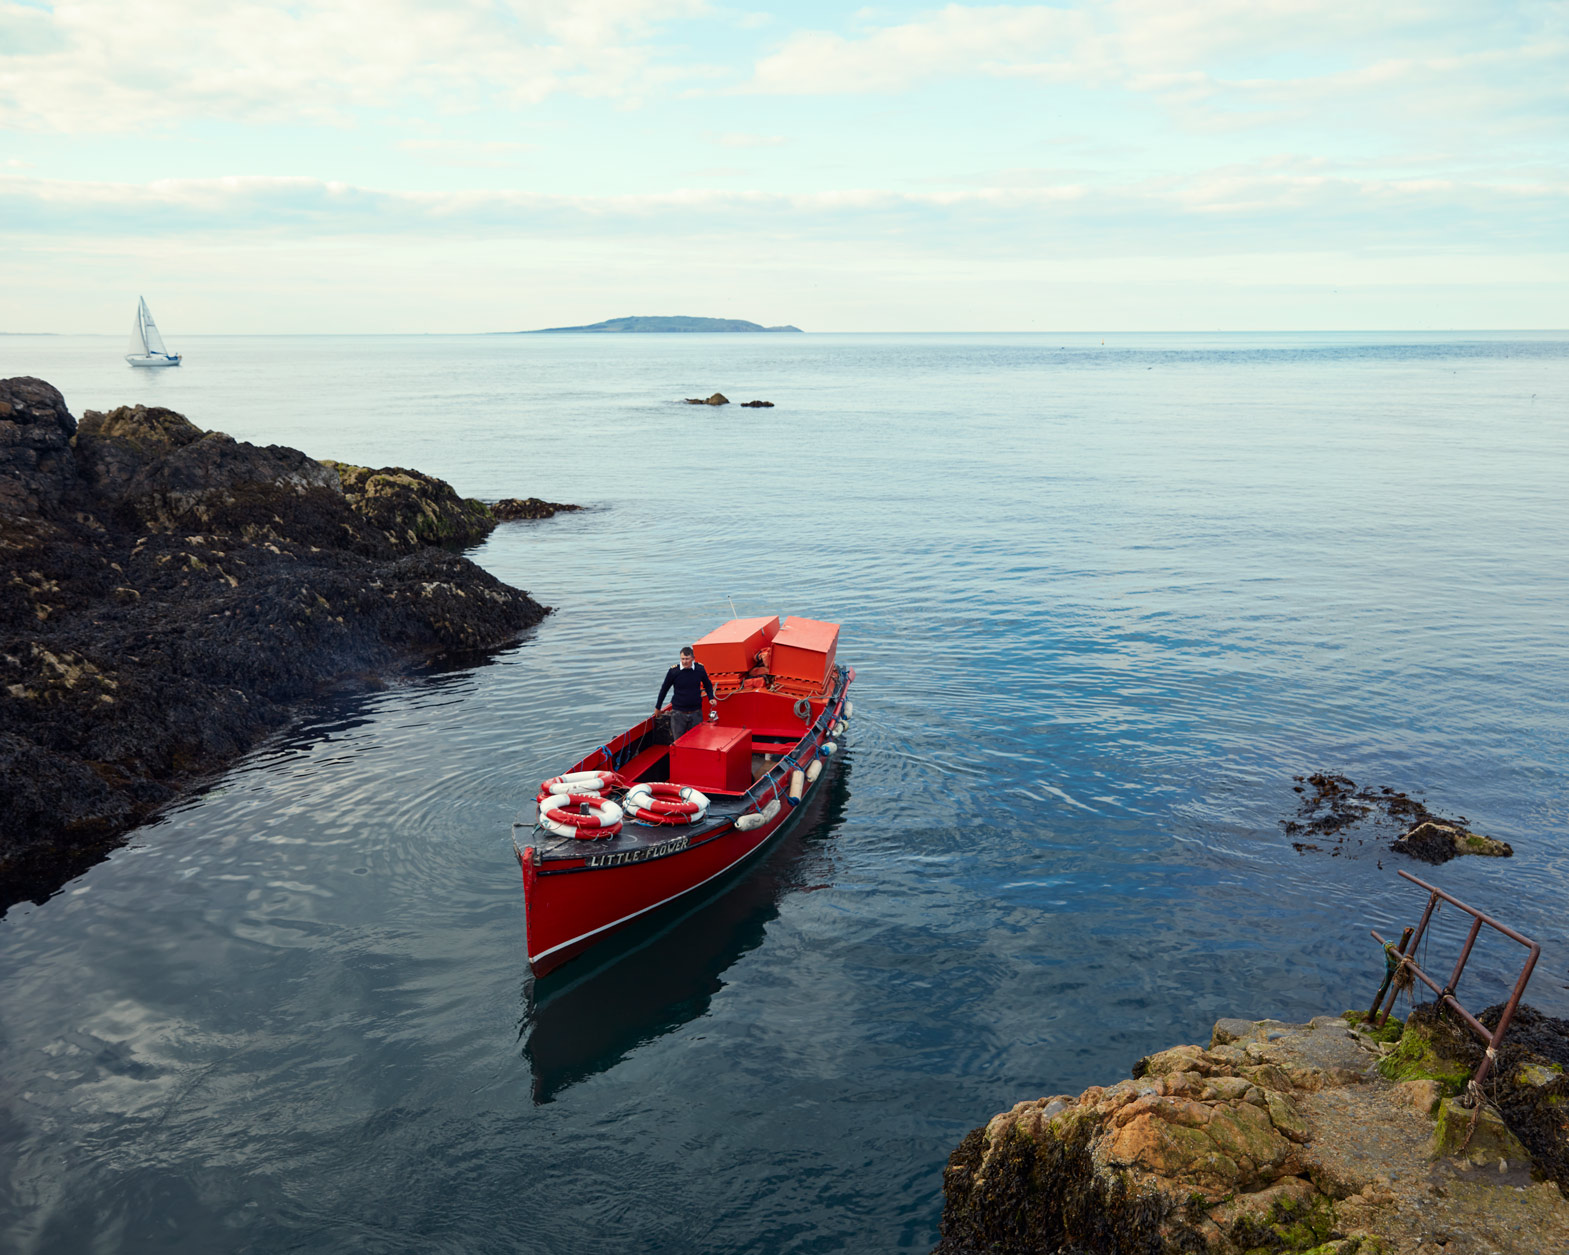 editorial portrait photography of man in red boat